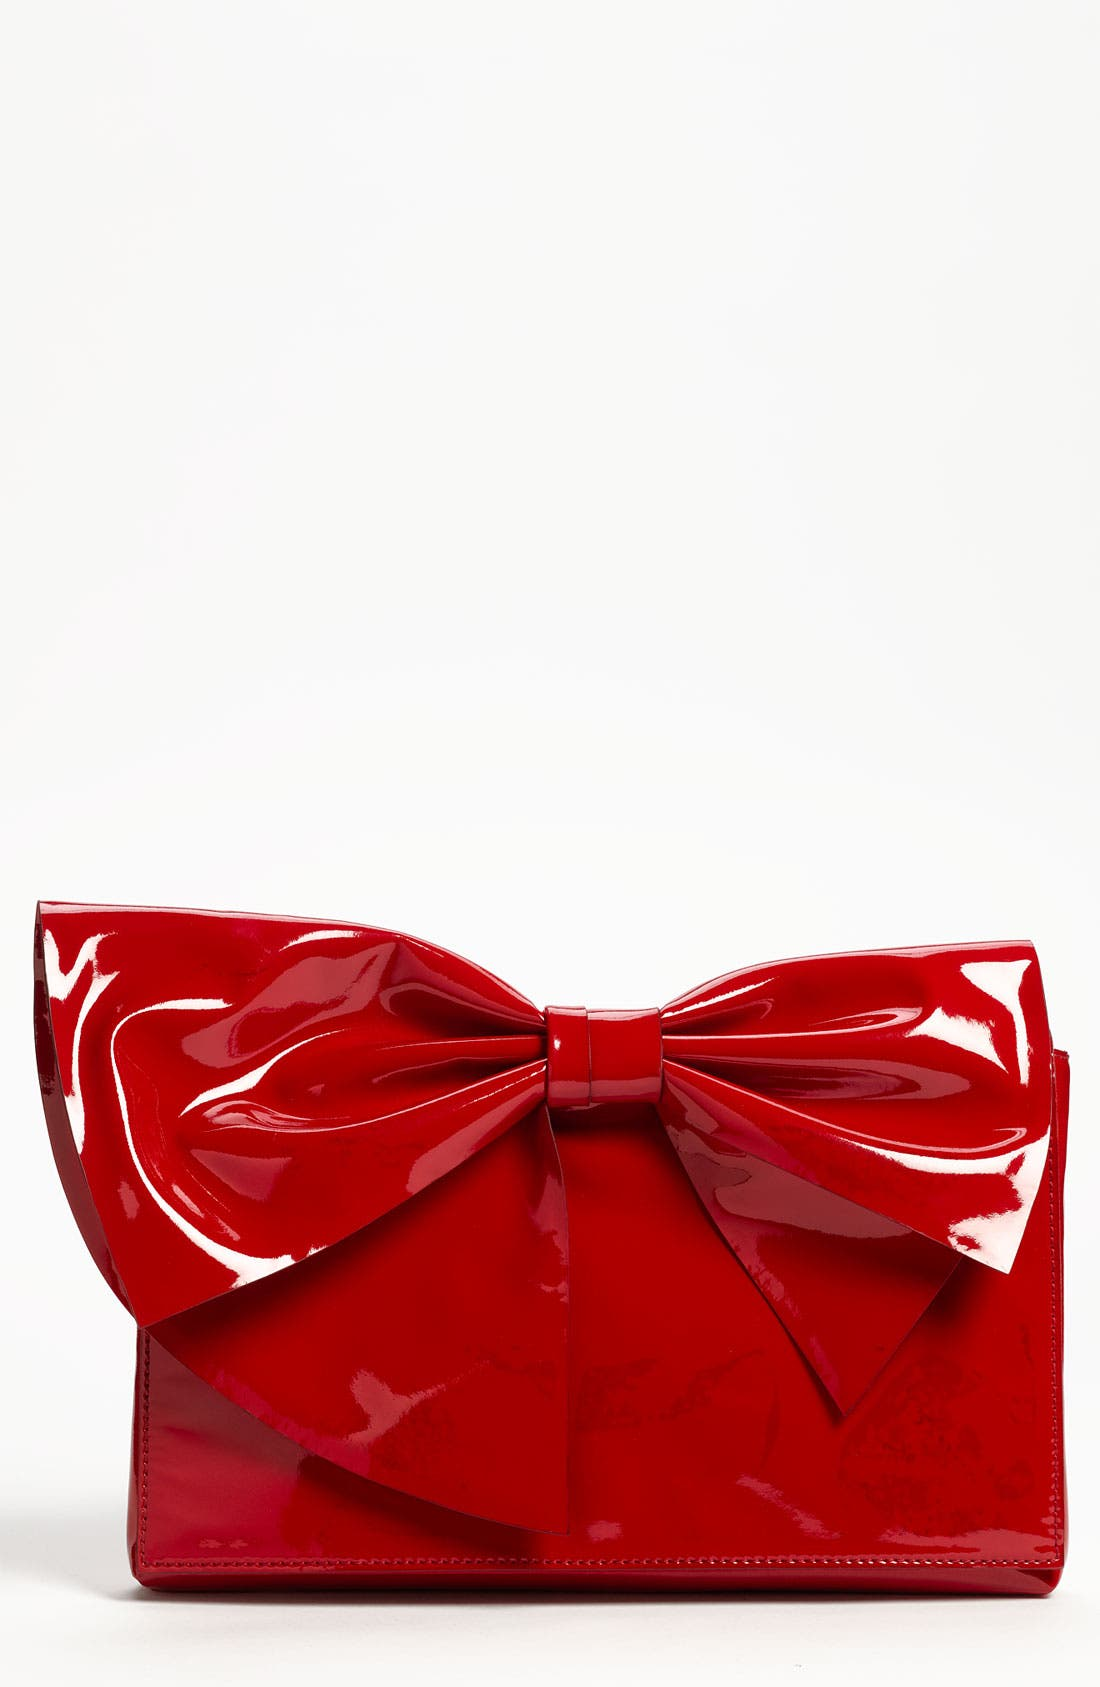 Main Image - Valentino 'Lacca Bow' Clutch